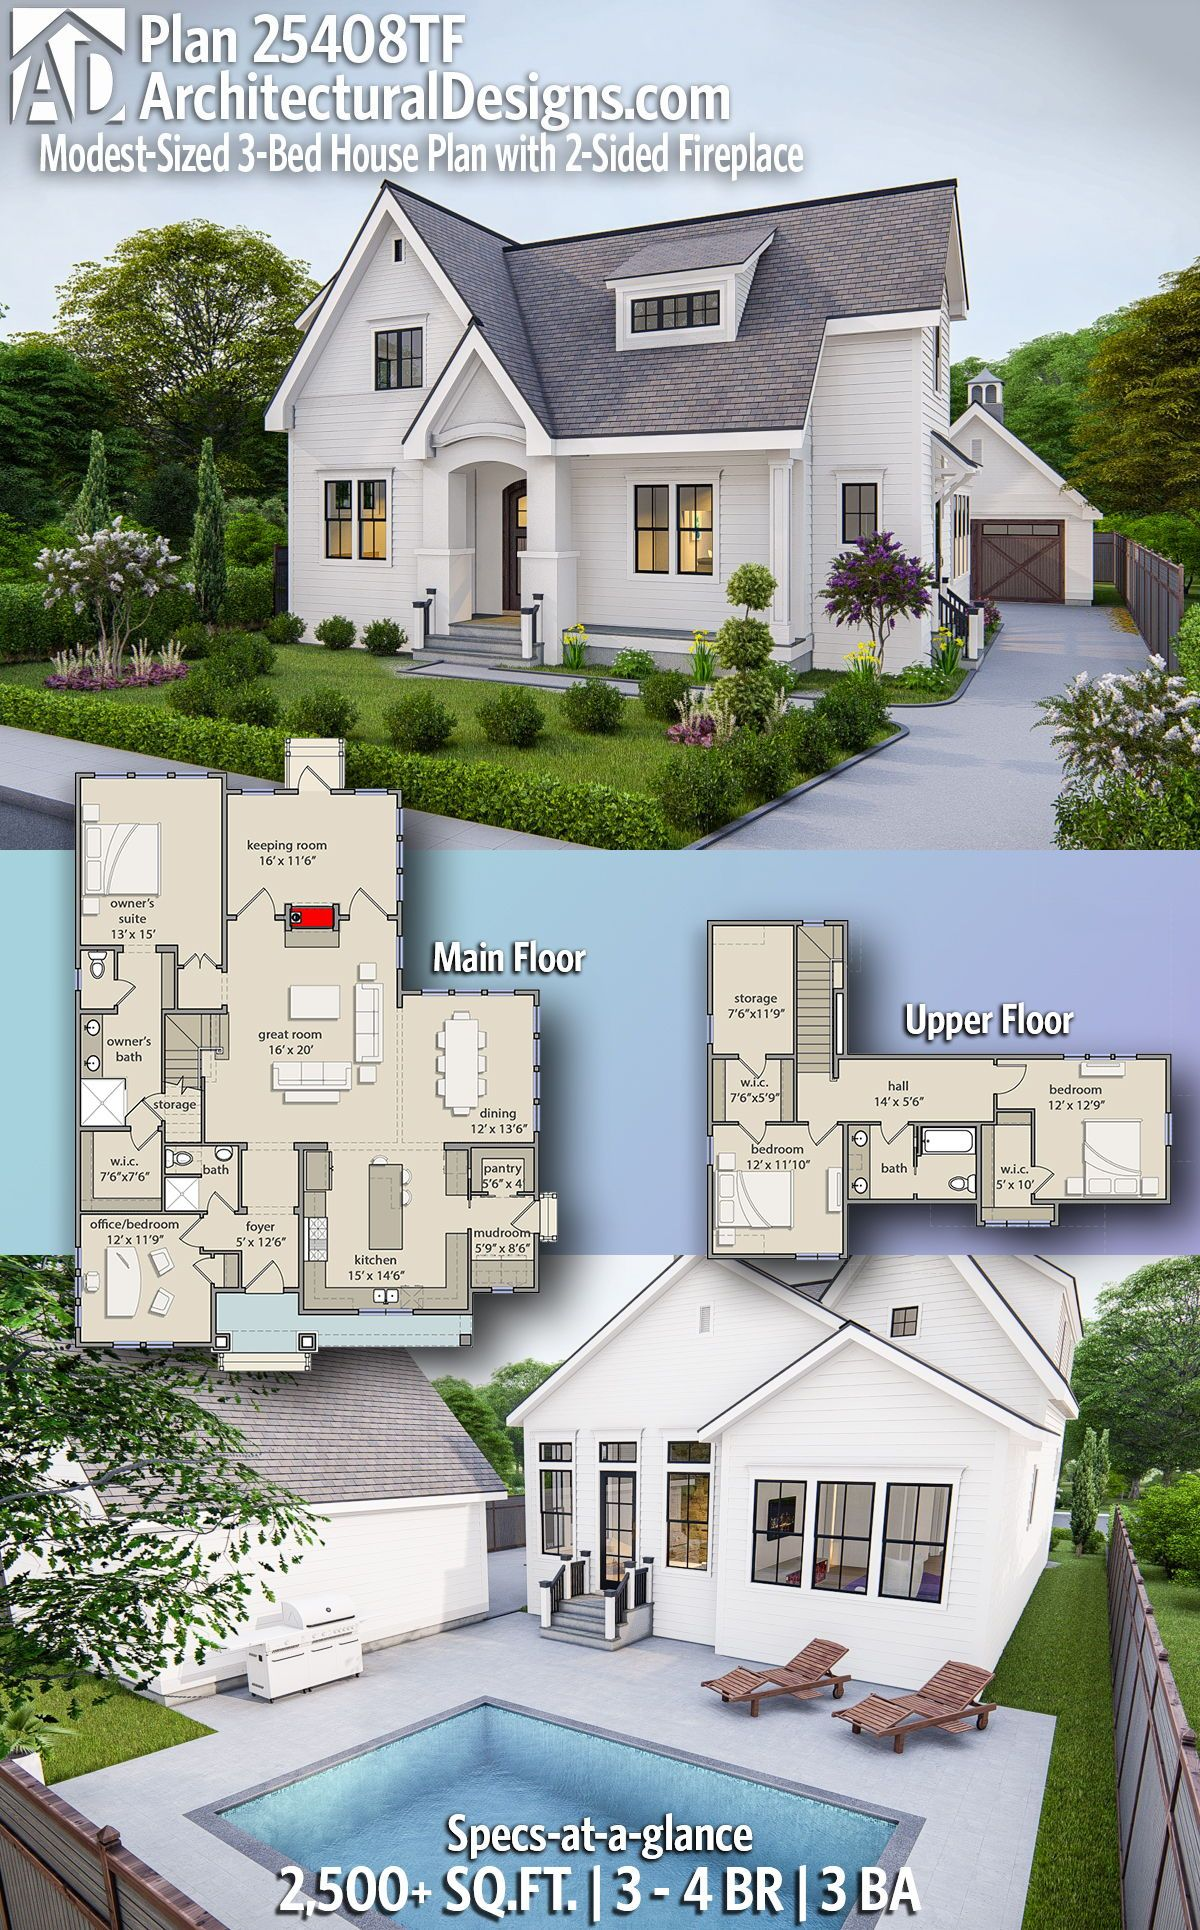 Plan 25408tf Modest Sized 3 Bed House Plan With 2 Sided Fireplace